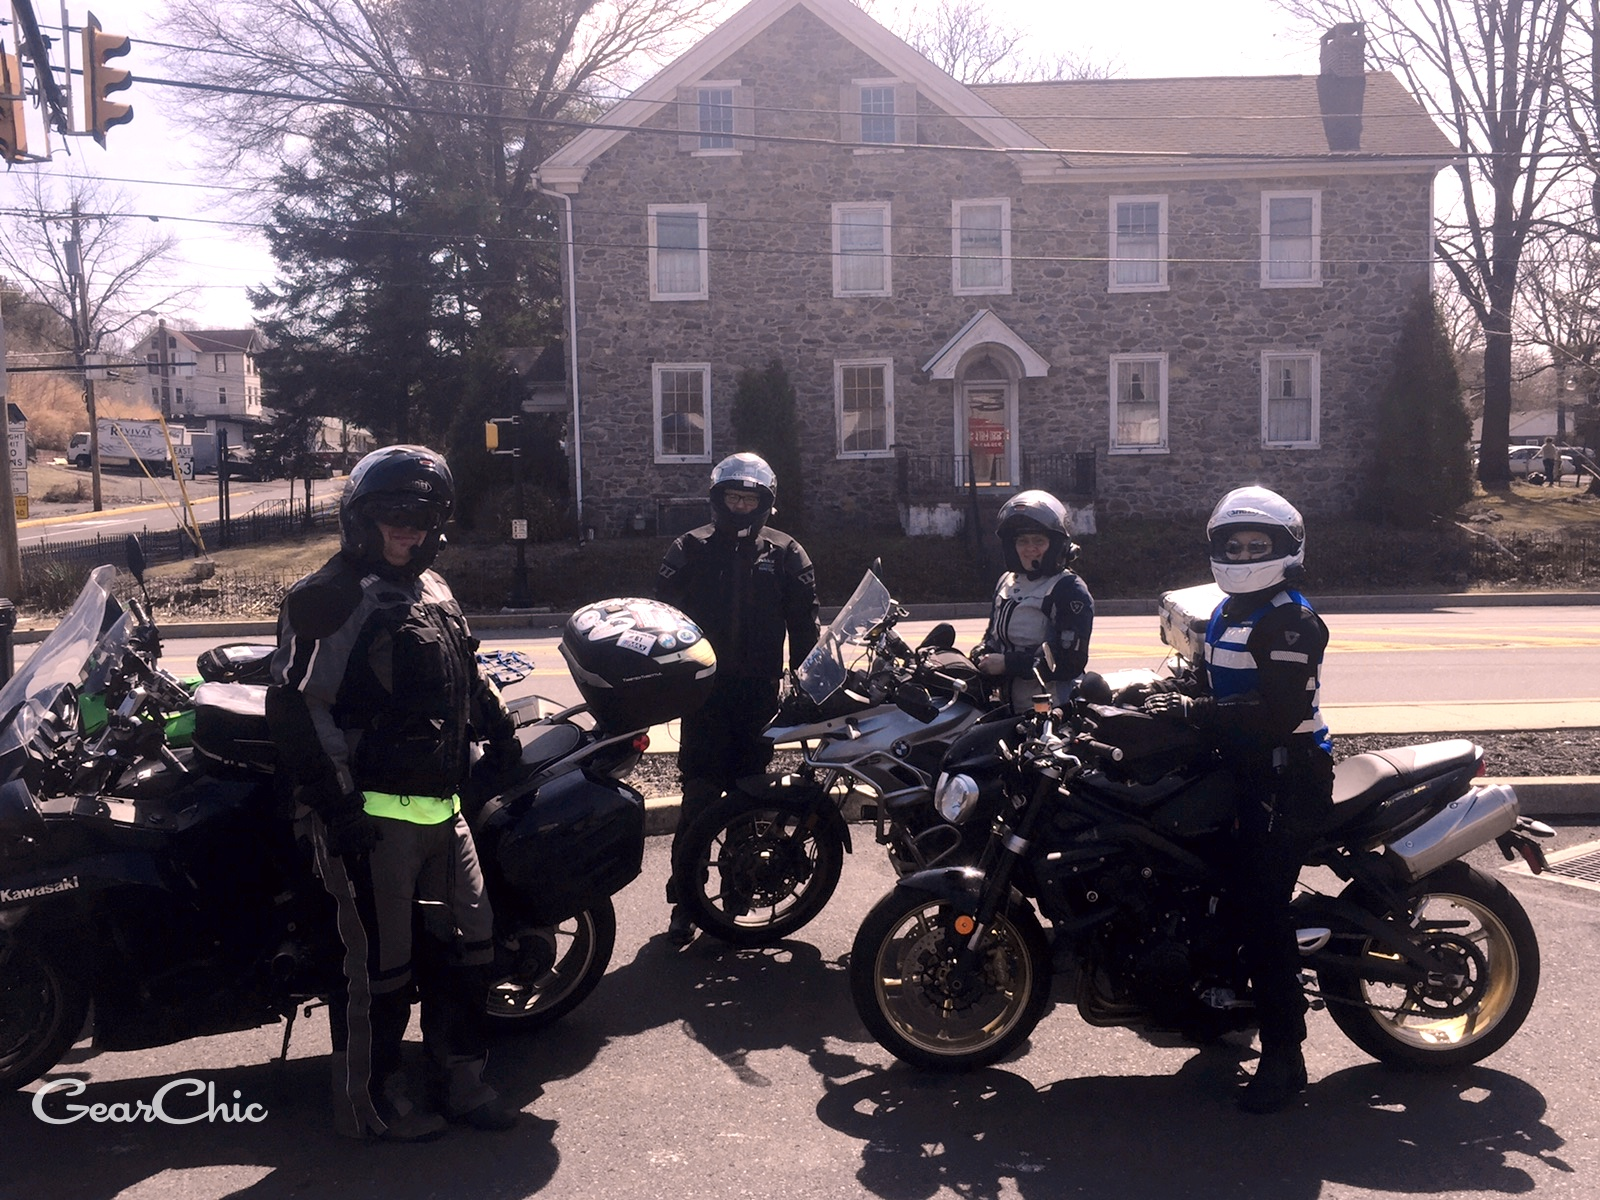 triumph street triple R motorcycles riding pennsylvania